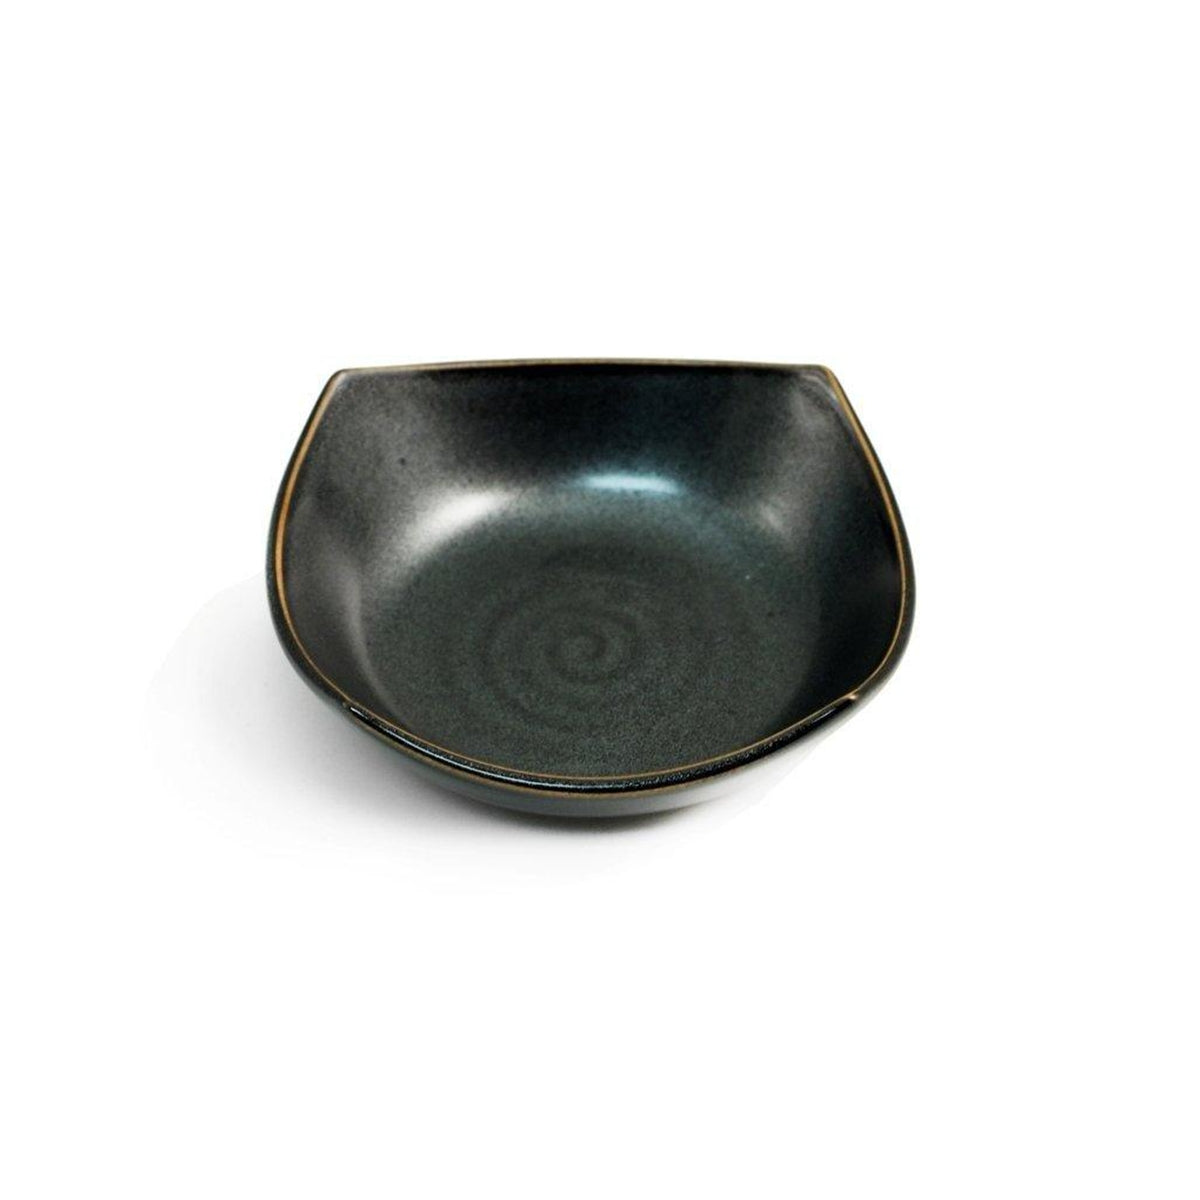 "Pearl Black Bowl 7 fl oz / 4.92"" x 4.92"""